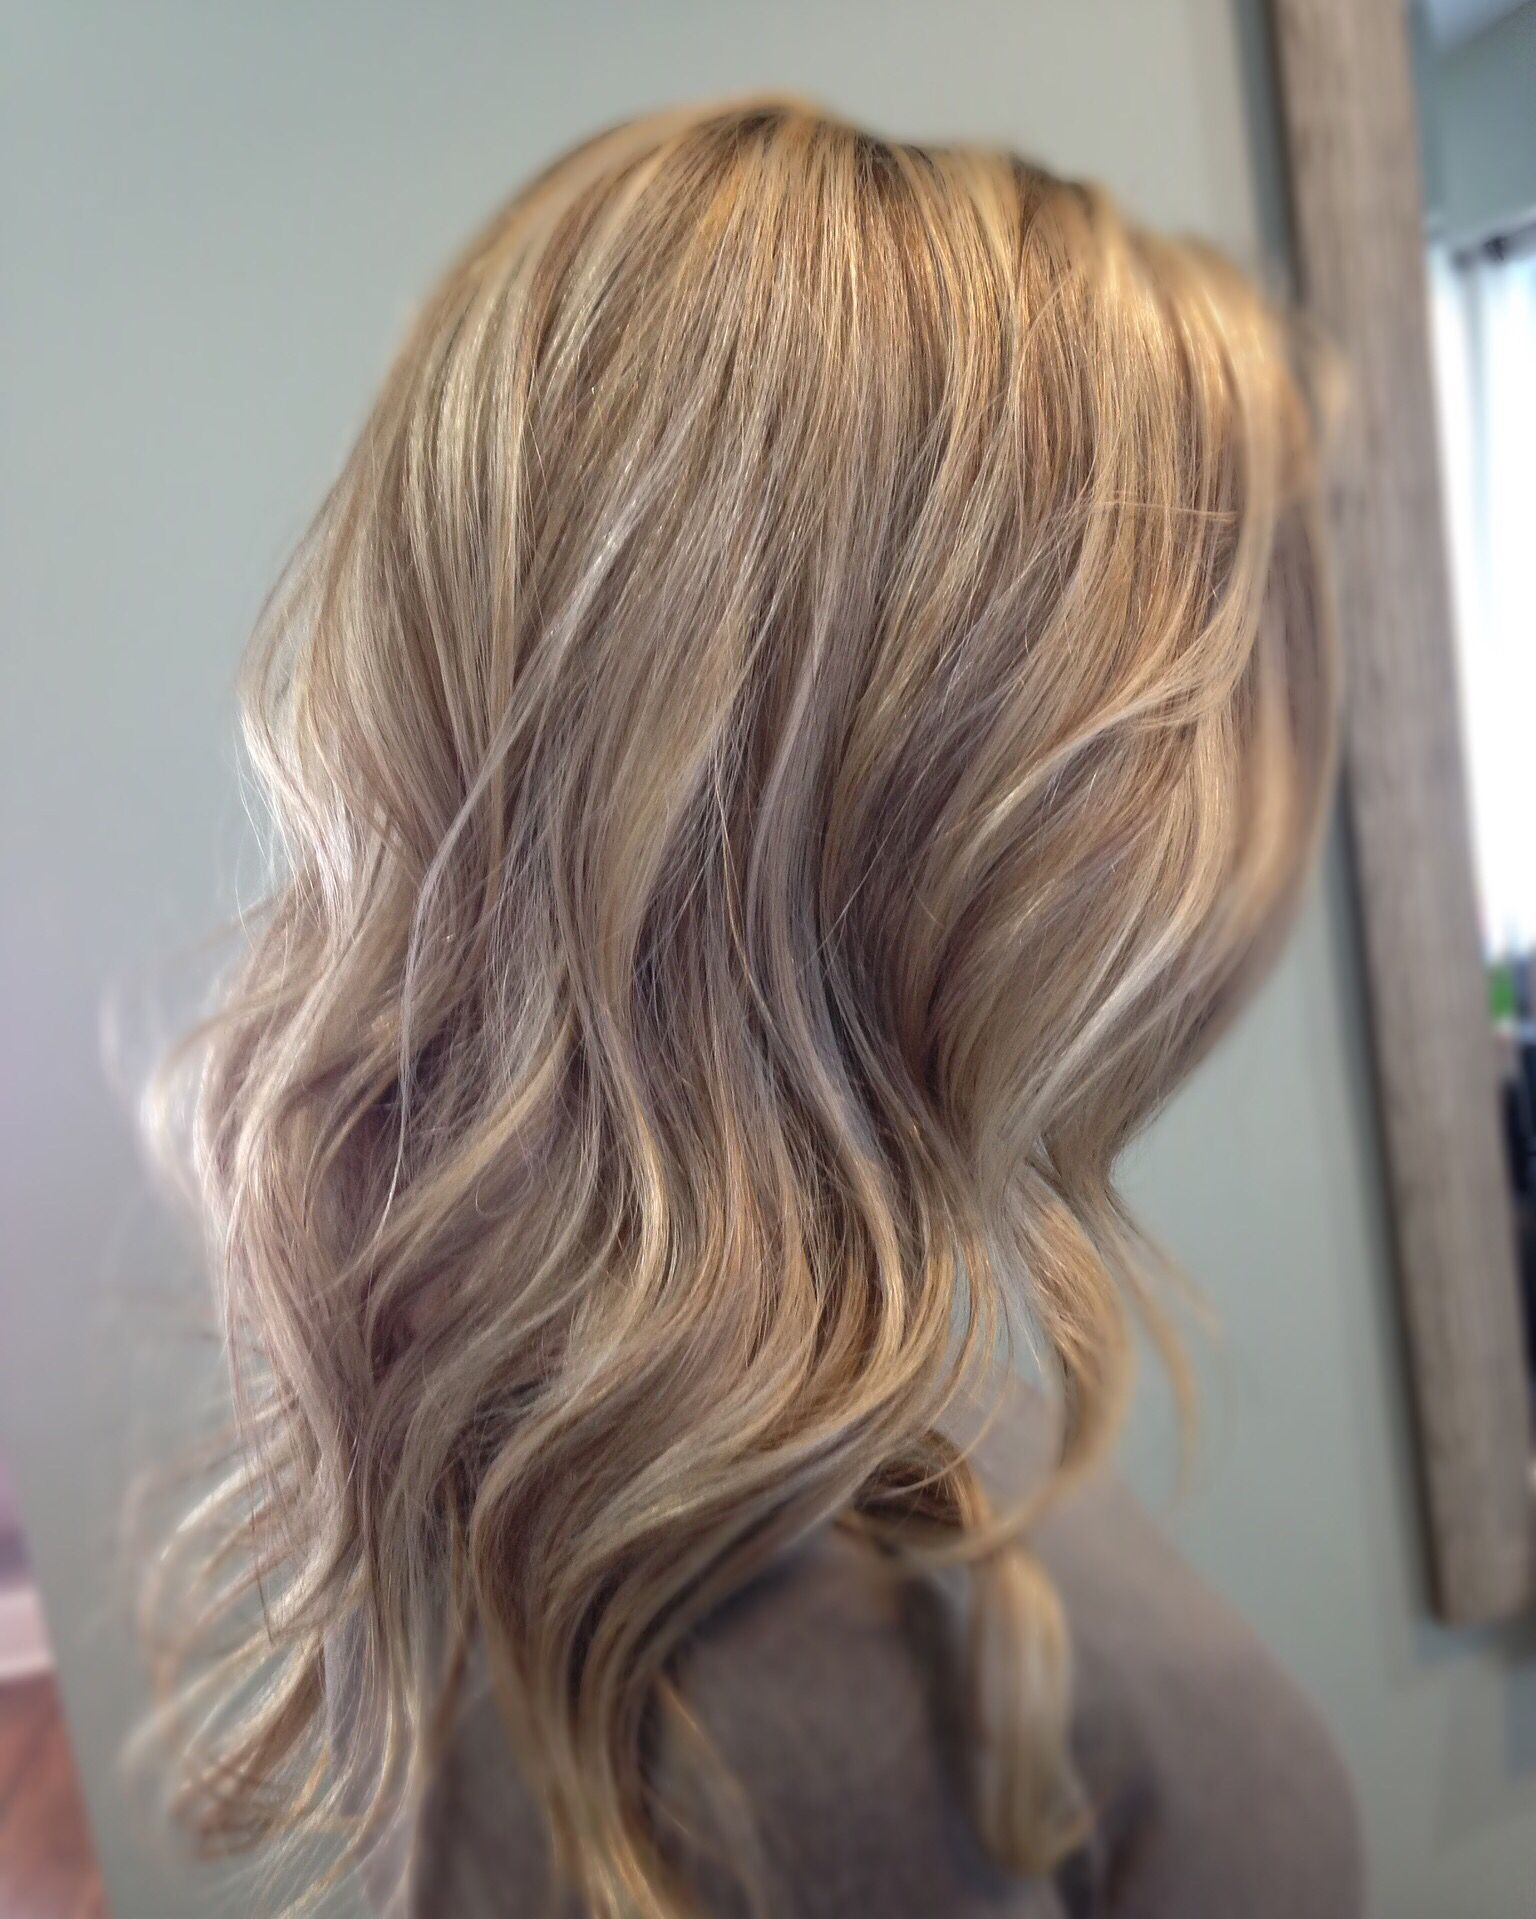 Dark And Light Blonde Highlights Sandy Blonde Hair Beige Hair Brown Hair With Blonde Highlights